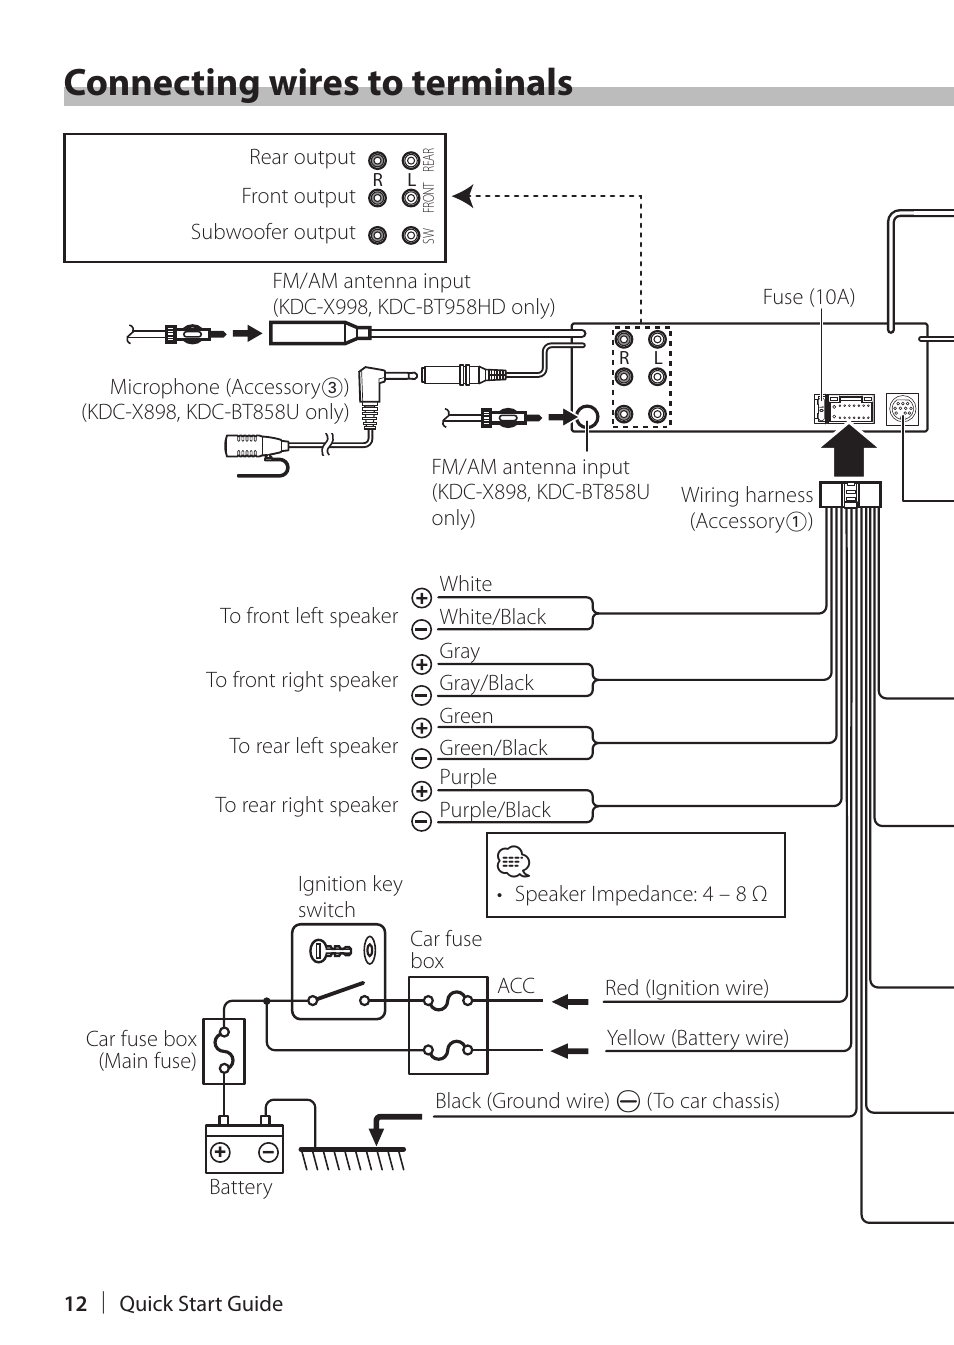 hight resolution of connecting wires to terminals kenwood kdc x898 user manual page schematic diagram connecting wires to terminals